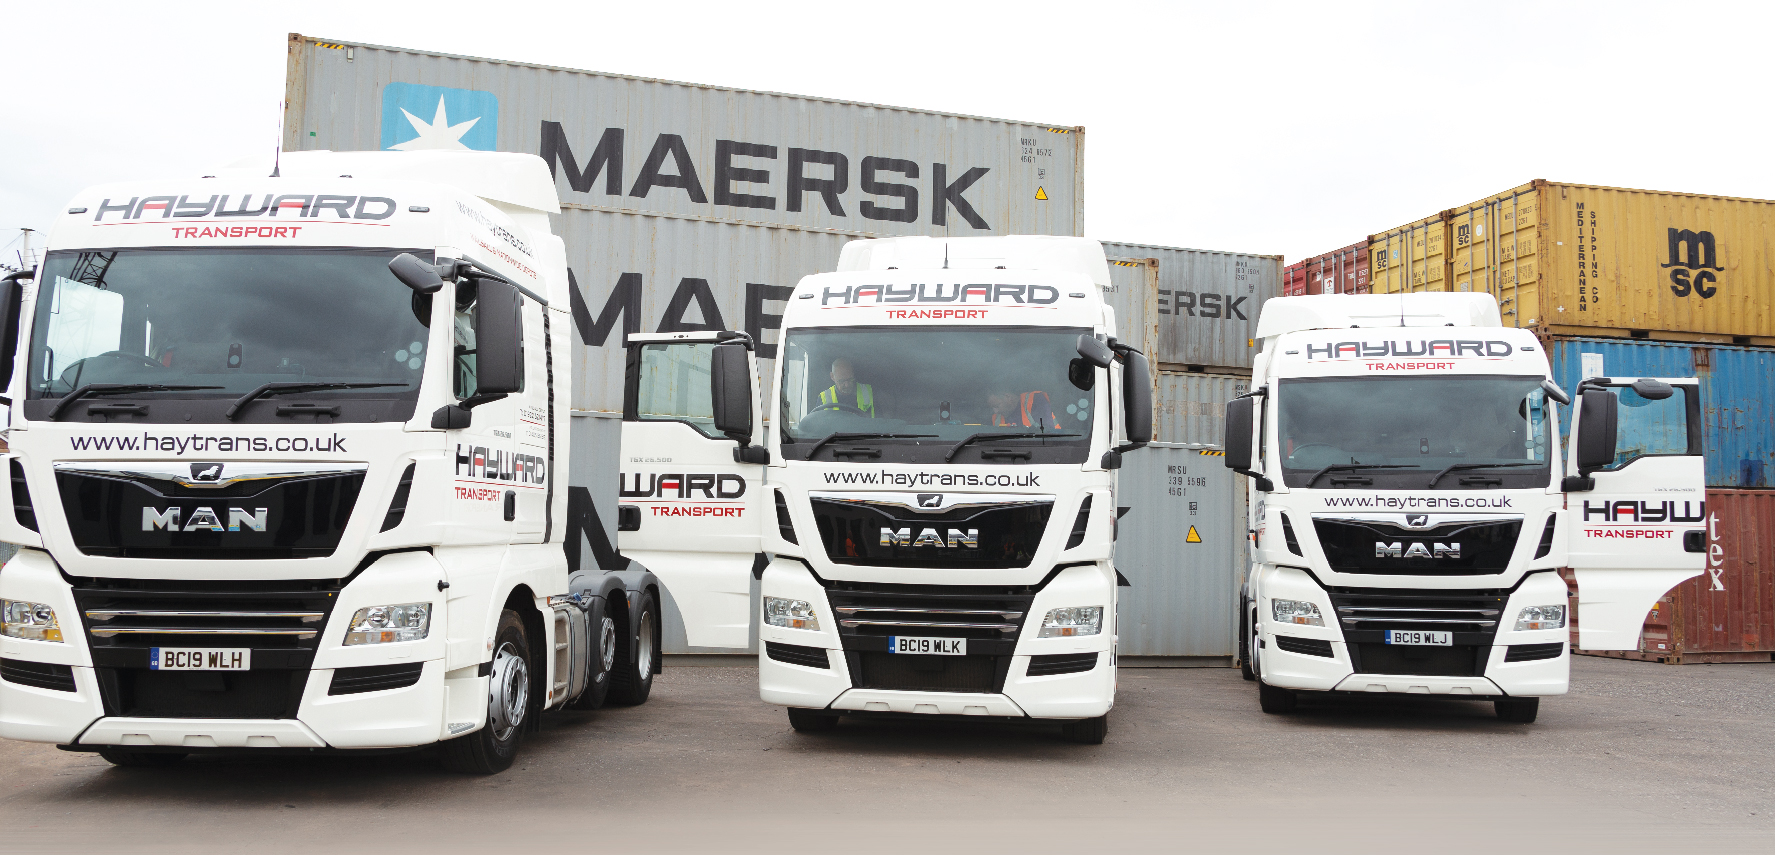 J Hayward & Sons of Walsall Ltd - flexible and trusted haulage solutions | container haulage